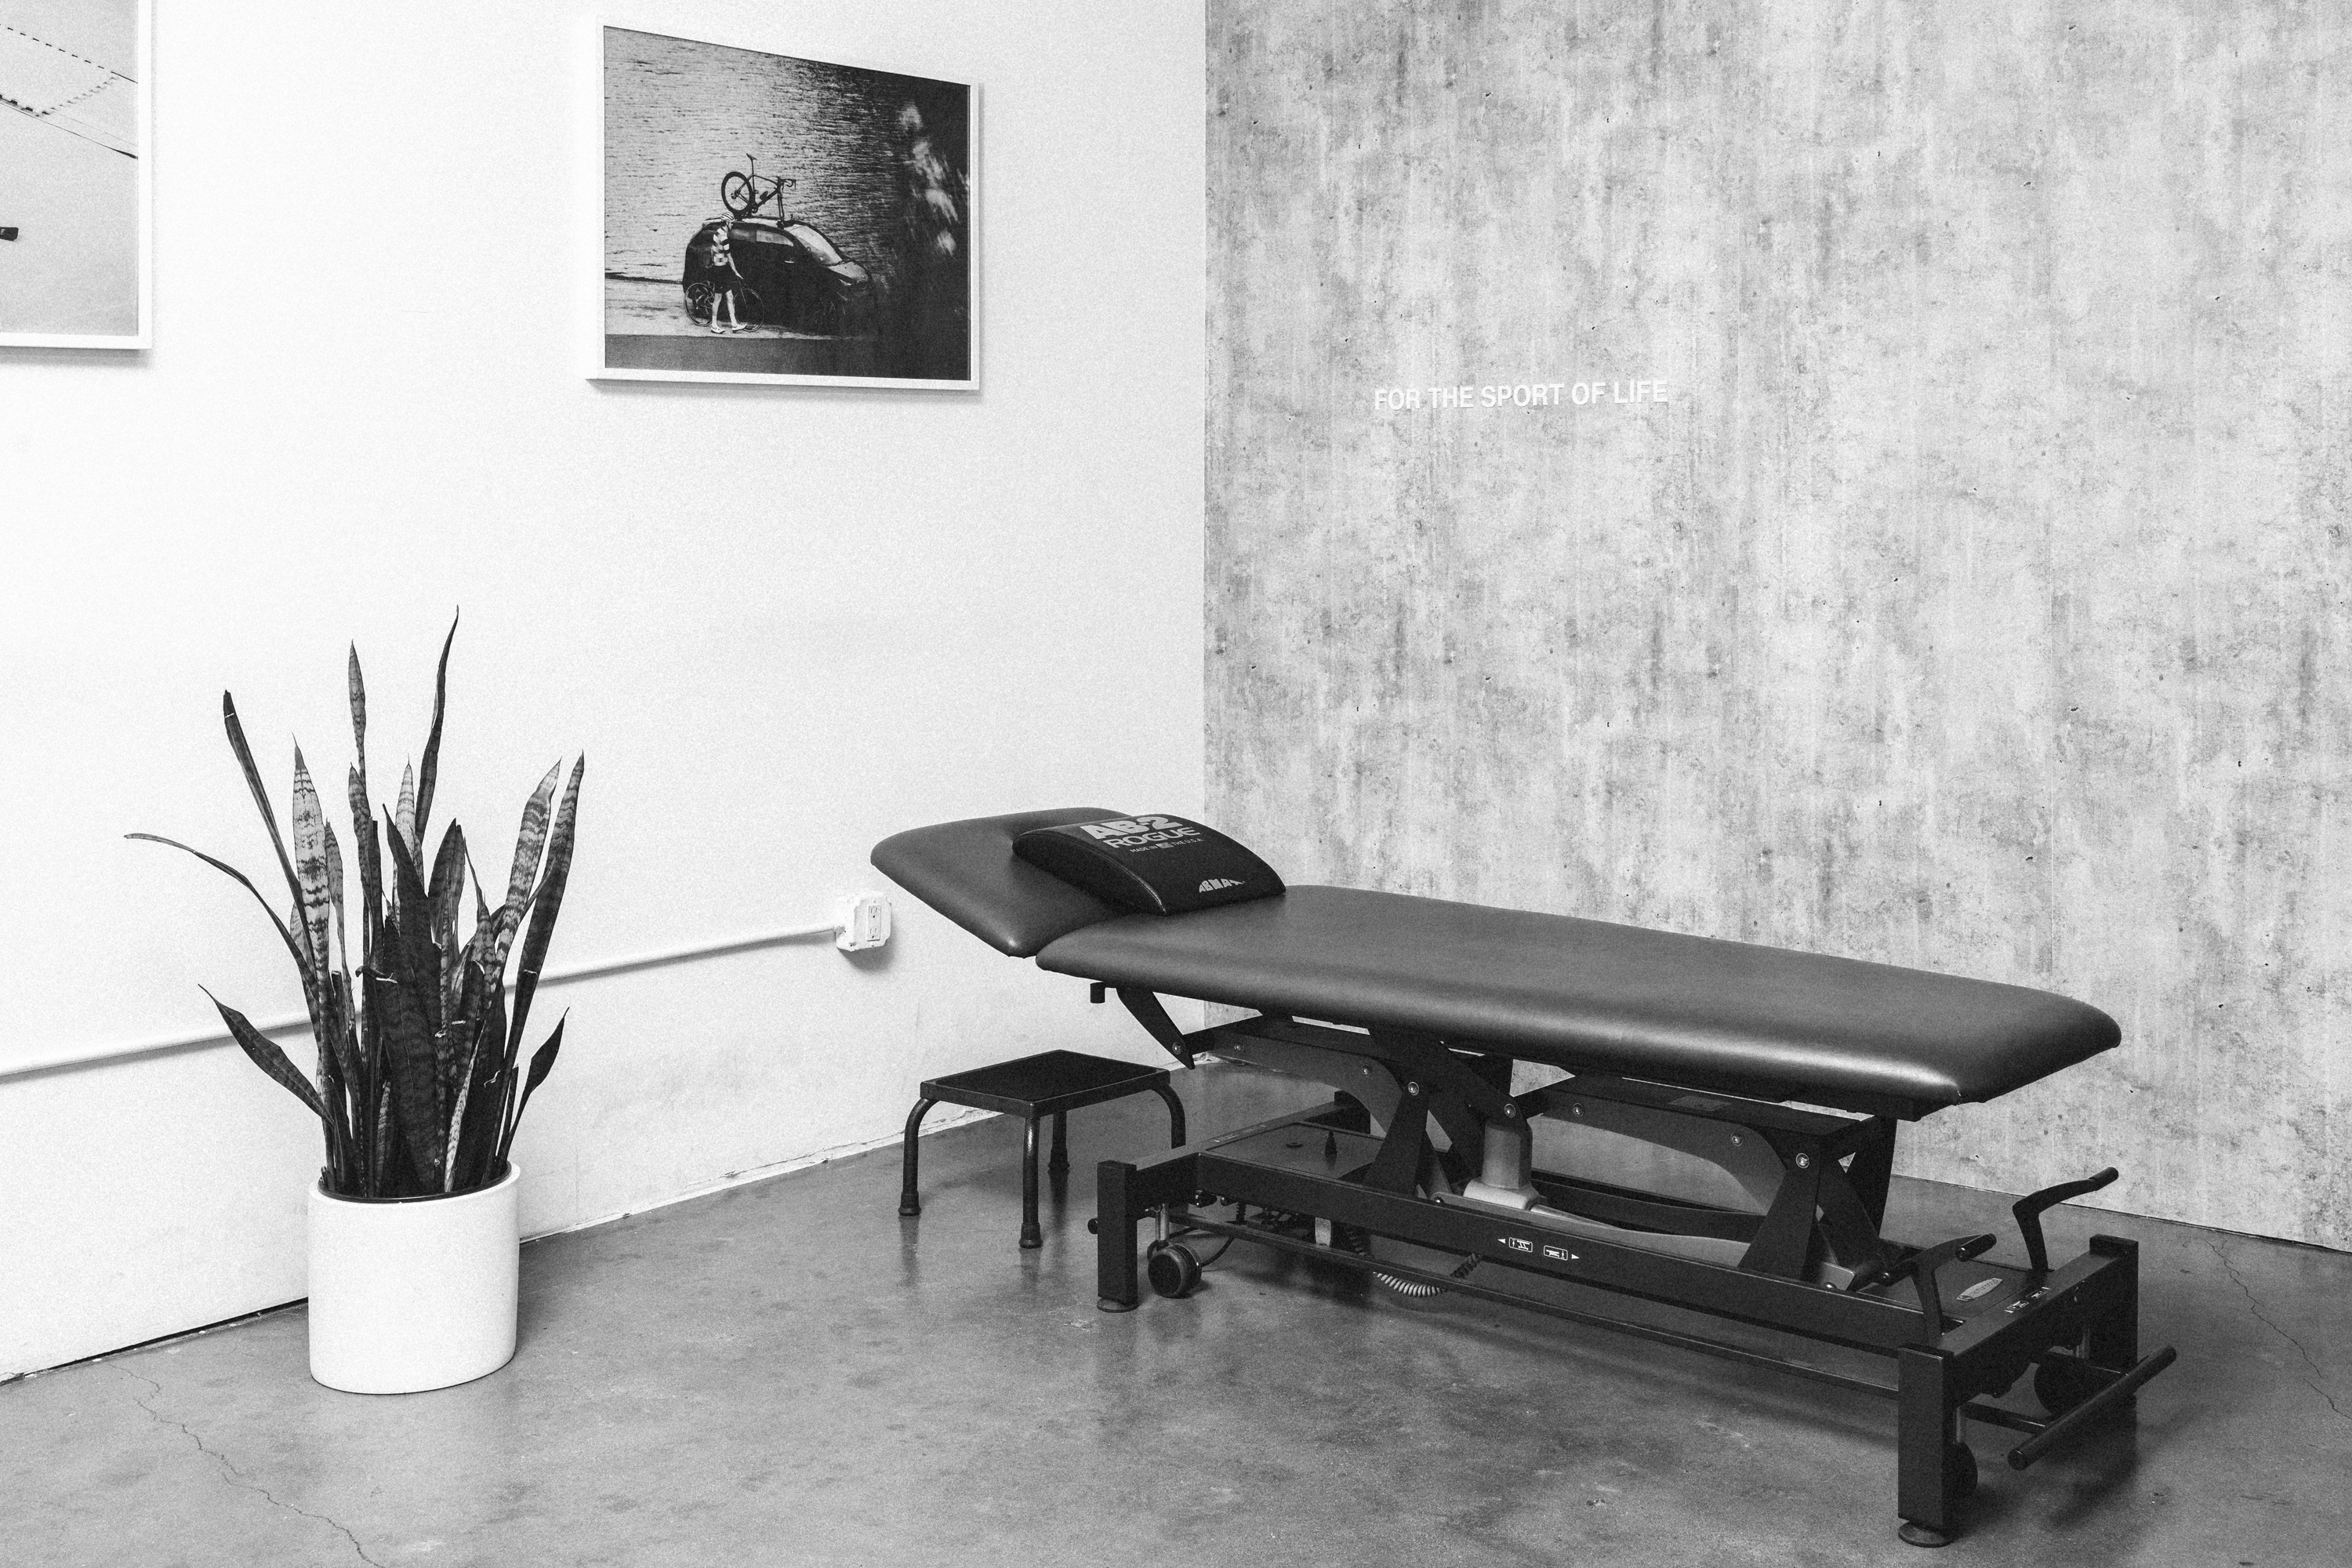 Physical Therapy table in an exam room.